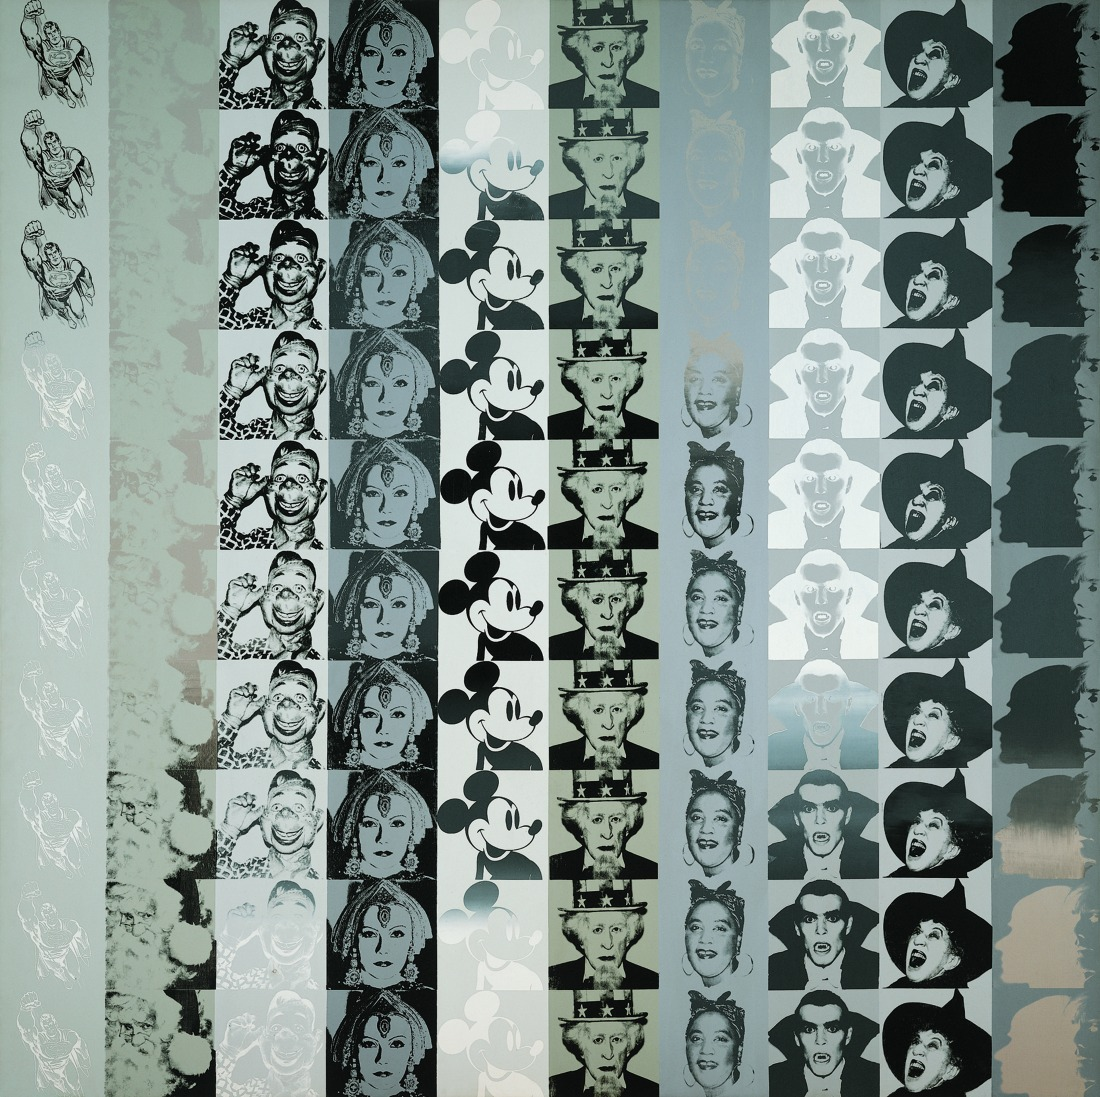 Andy Warhol, Myths, 1981. Synthetic polymer and screenprint on canvas, 100 x 100 inches. The Whitney Museum of American Art. Promised gift of Fisher Landau Center for Art. P.2010.340.